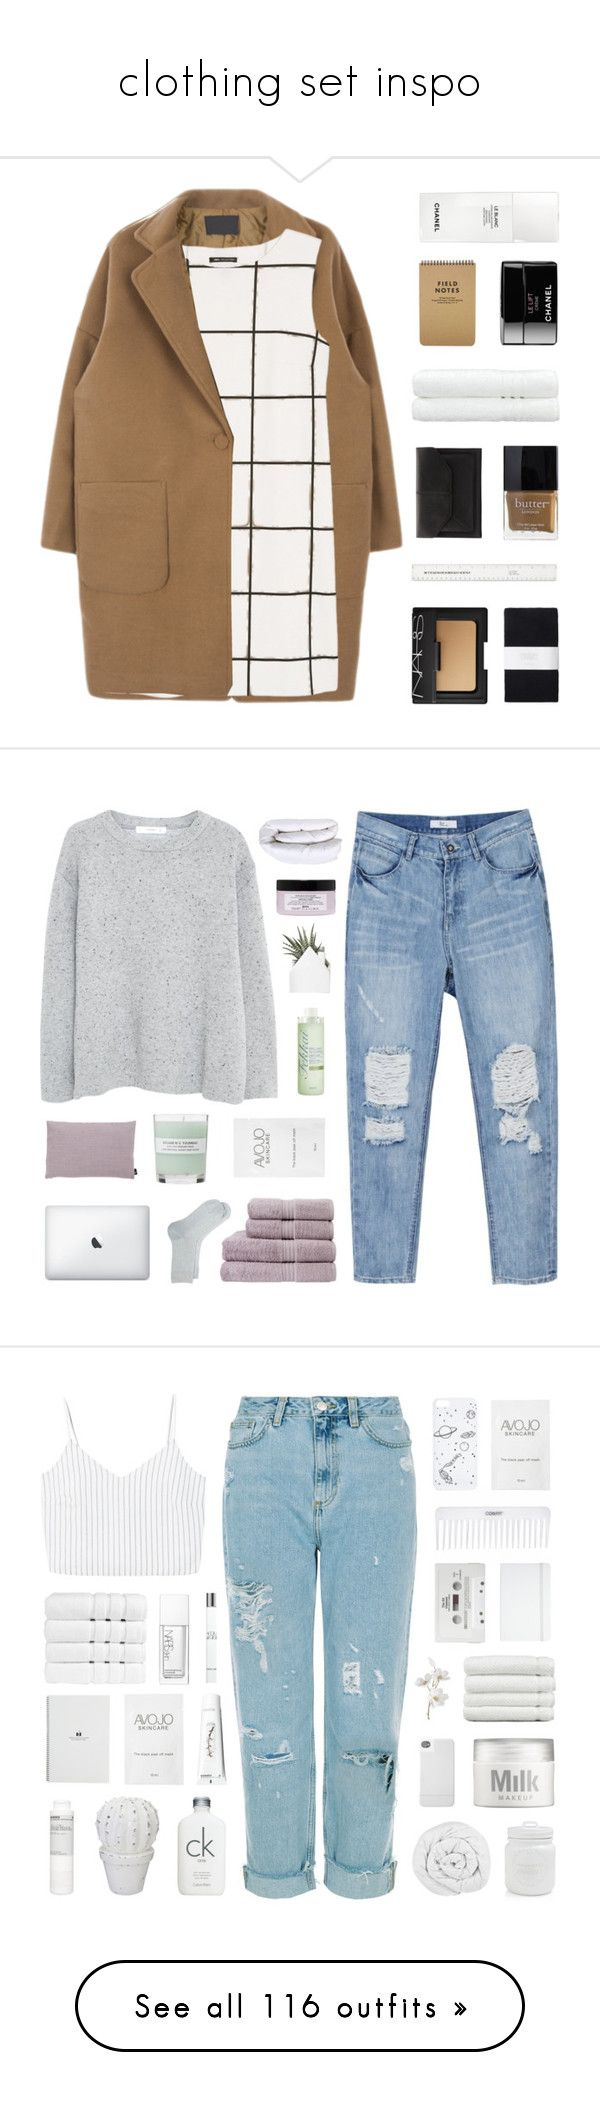 """""""clothing set inspo"""" by c-ityscape ❤ liked on Polyvore featuring MANGO, NARS Cosmetics, Toast, John Lewis, Butter London, Linum Home Textiles, Chanel, Christy, A.P.C. and Fekkai"""